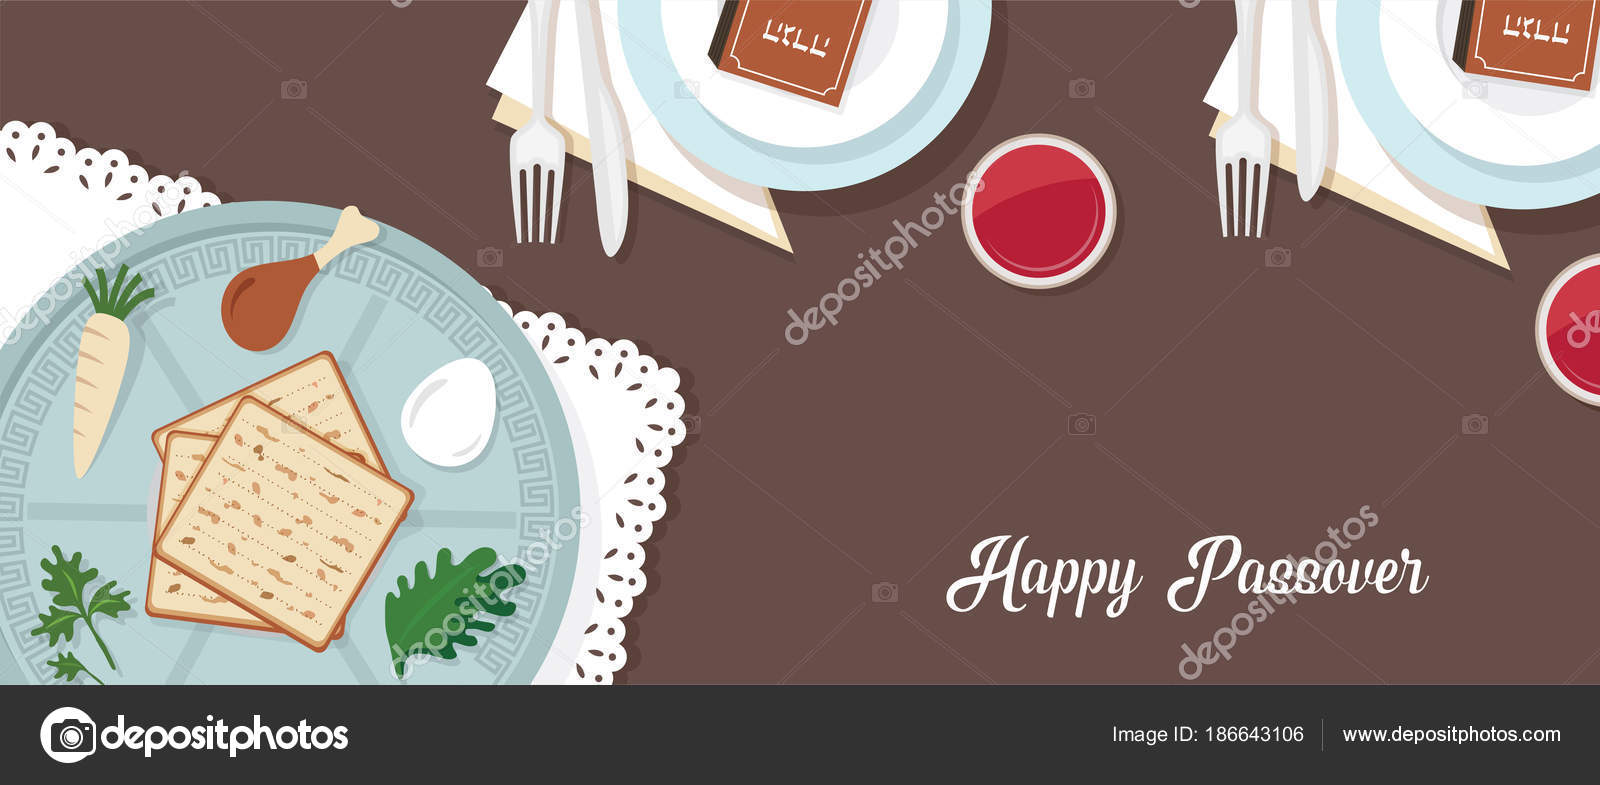 Traditional passover table for passover dinner with passover plate traditional passover table for passover dinner with passover plate vector illustration template banner design buycottarizona